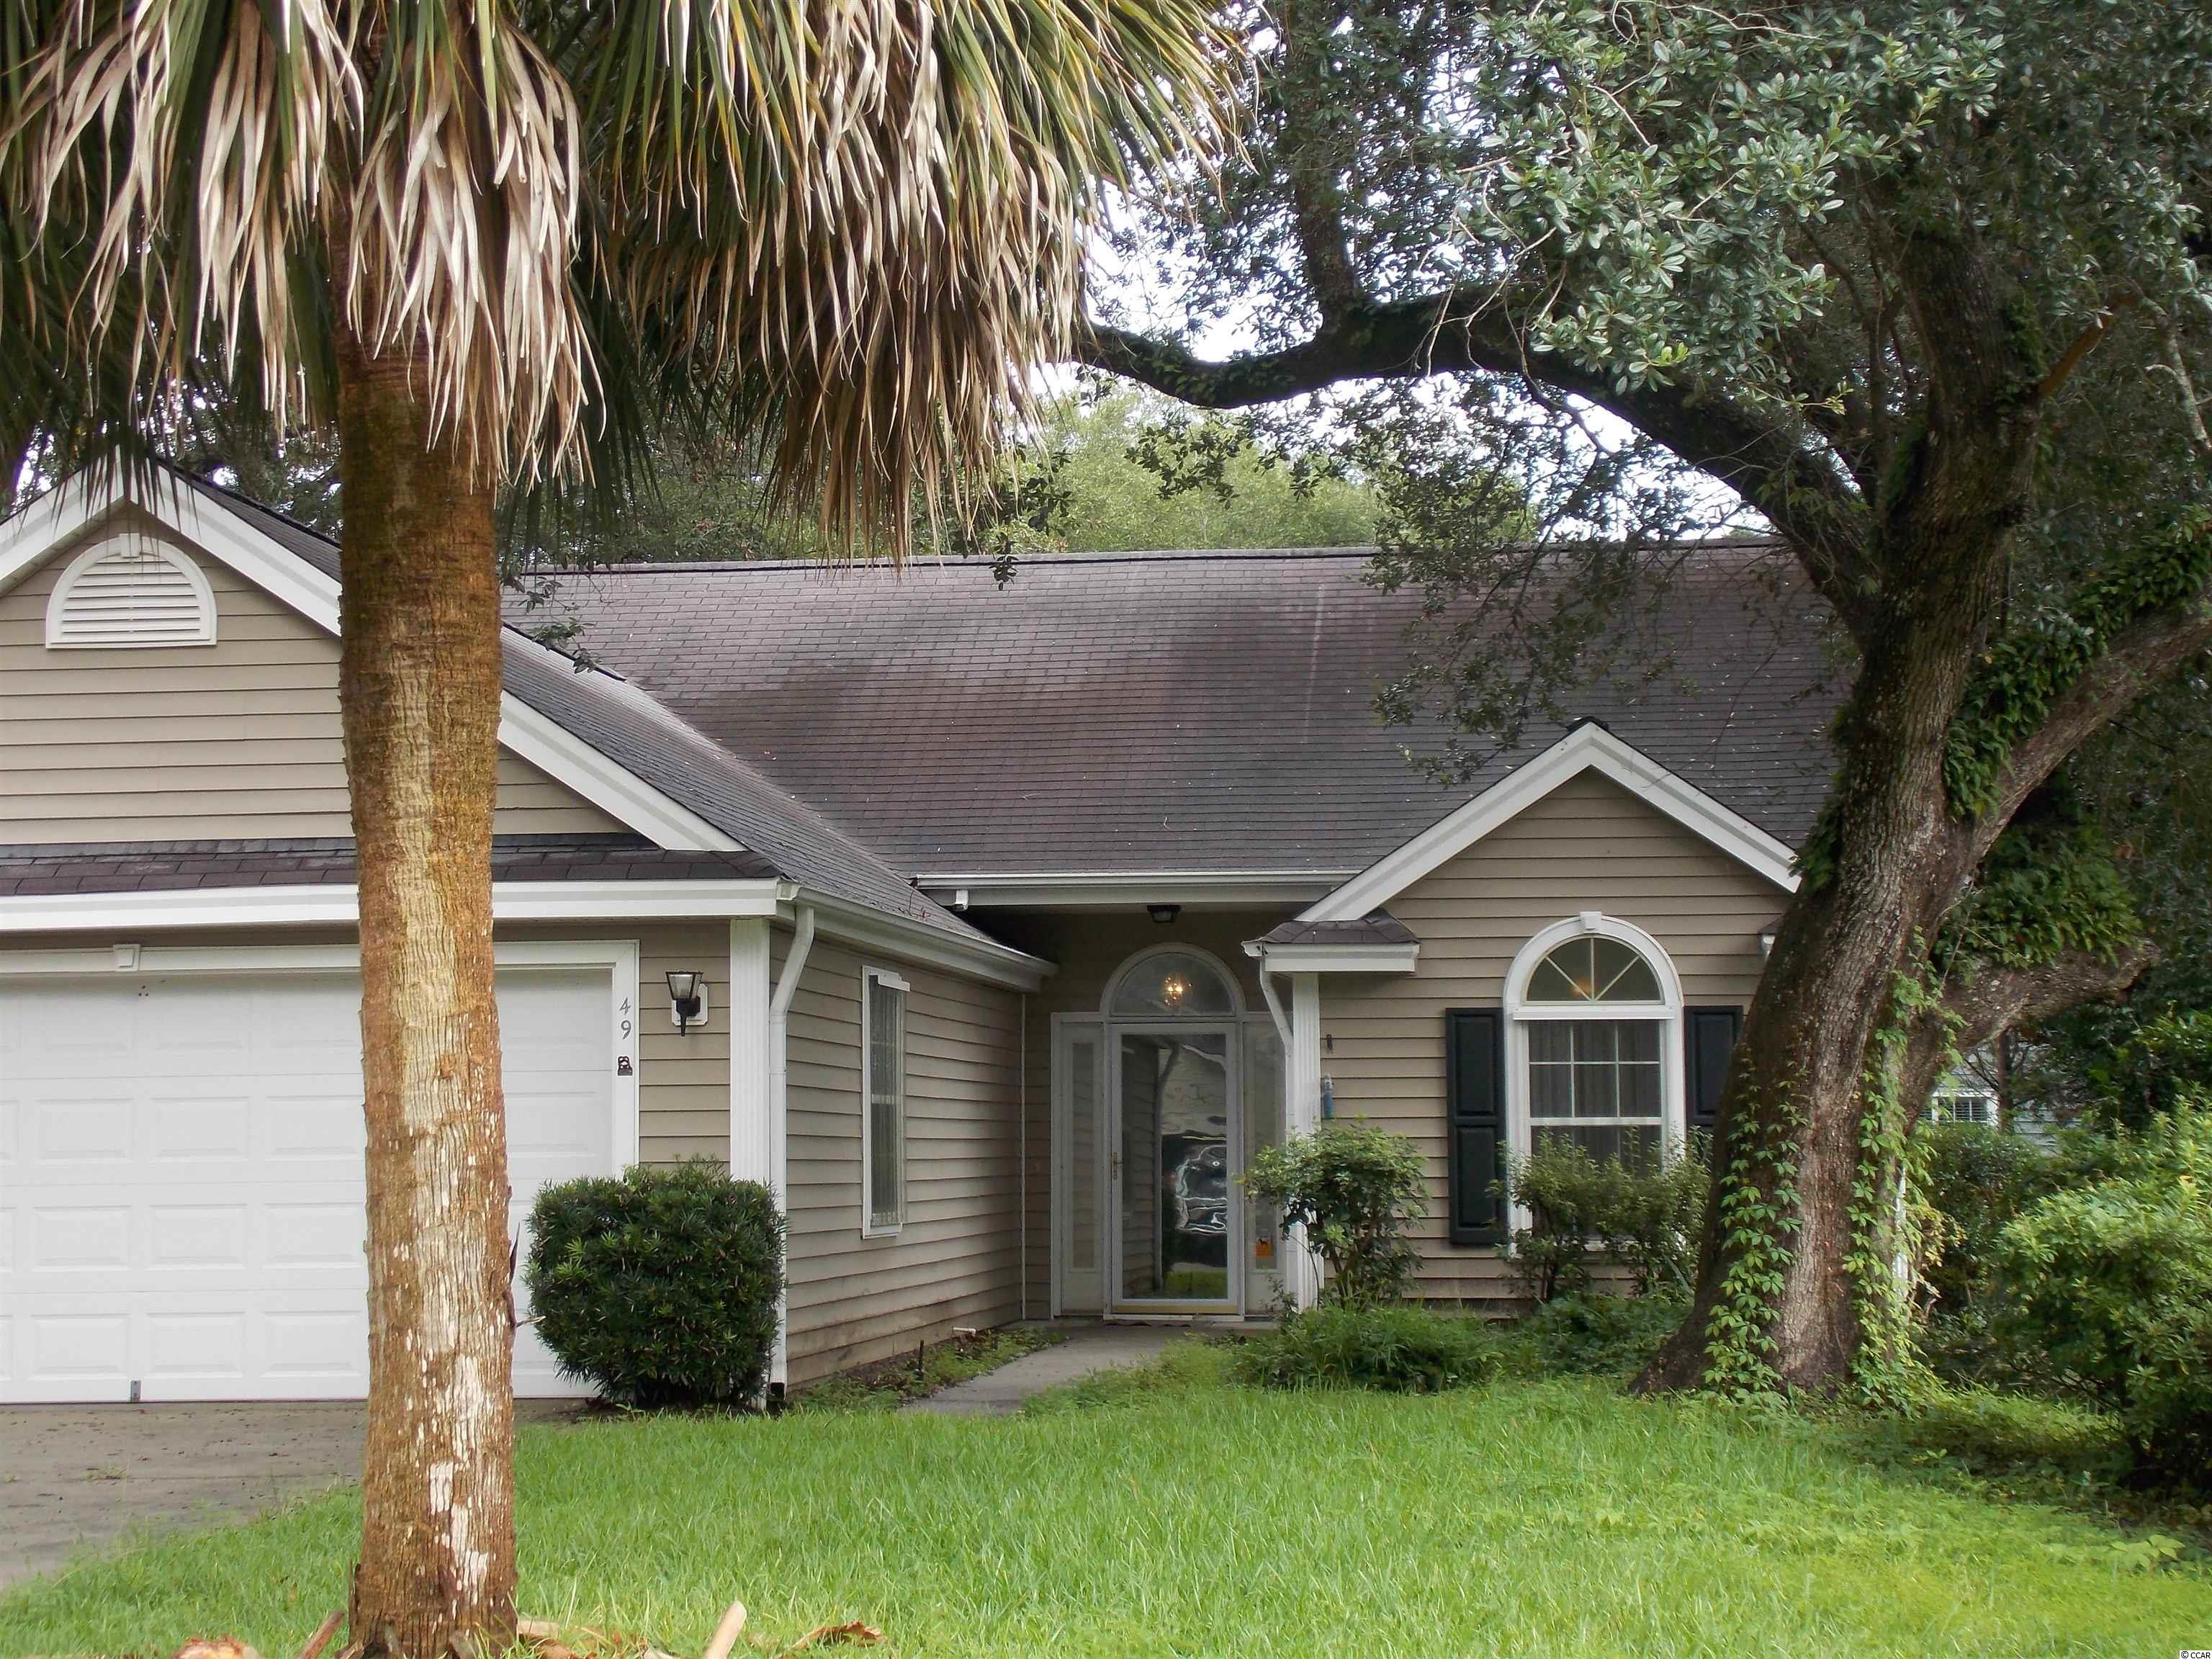 This Pawley's Island Beauty is 1694 square feet of bright living space with storage galore.  Counted there are nine closets plus a pull down attic.  Off of the spacious family Room is a formal dining room and kitchen with breakfast nook.  Through the family room and French doors is a true Carolina Room, surrounded by windows, tiled floor and a separate ductless HVAC unit.  Every window in the house has clear polycarbonate hurricane panels allowing the interior to stay light and bright.  The mature landscaping includes ancient oaks, palm and magnolias.  Location is ideal with the home East of Hwy 17 and 3 minutes or 1.2 miles from Pawley's Historic District and the beach!